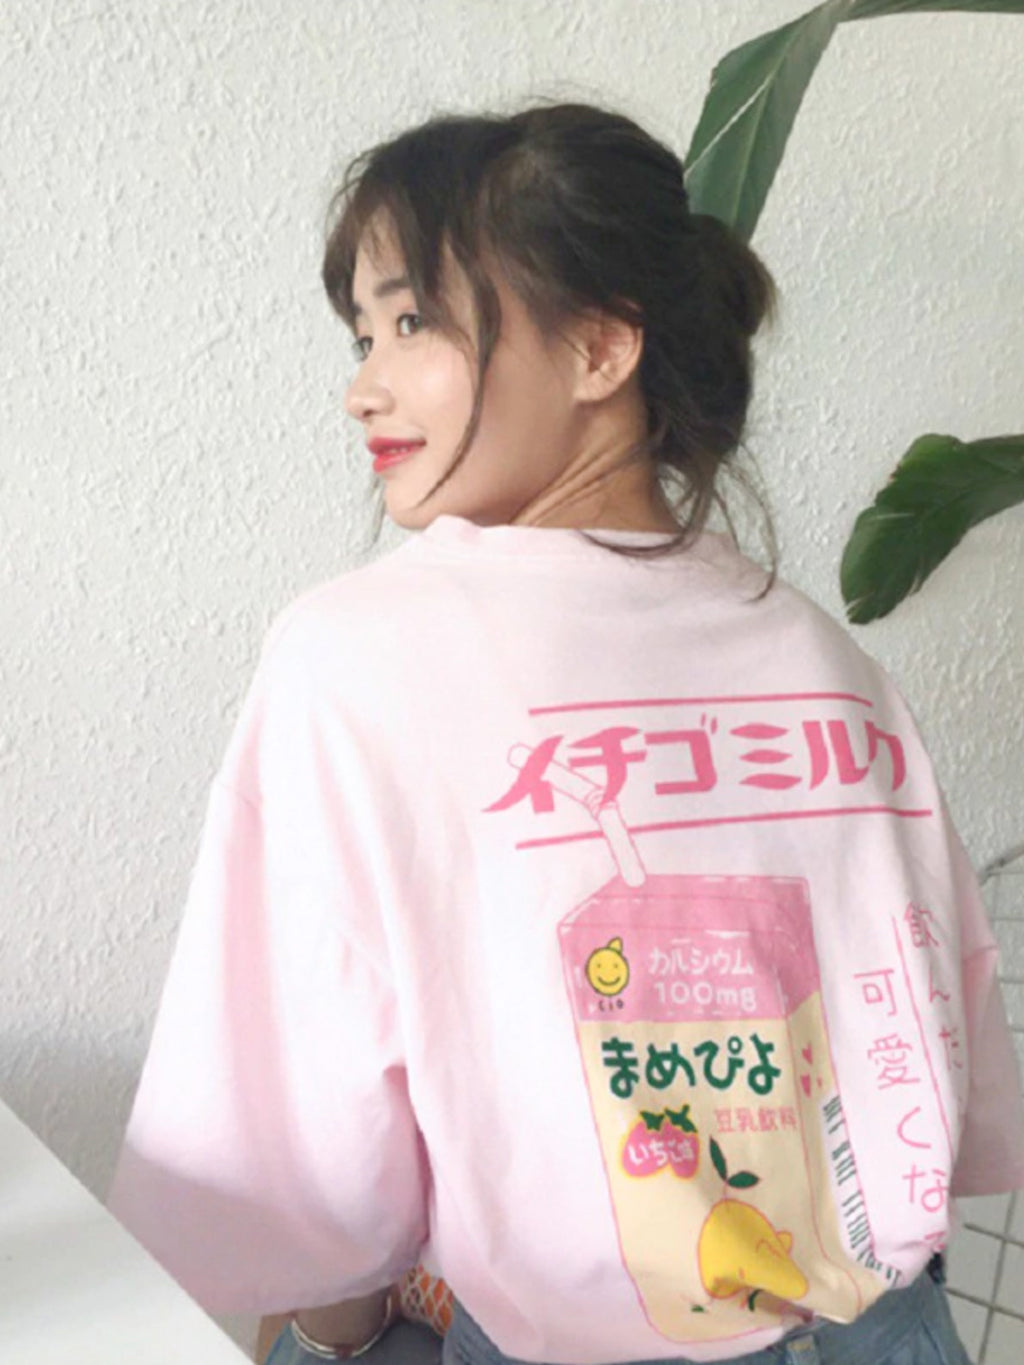 Japanese Pink Boxed Drink Tee